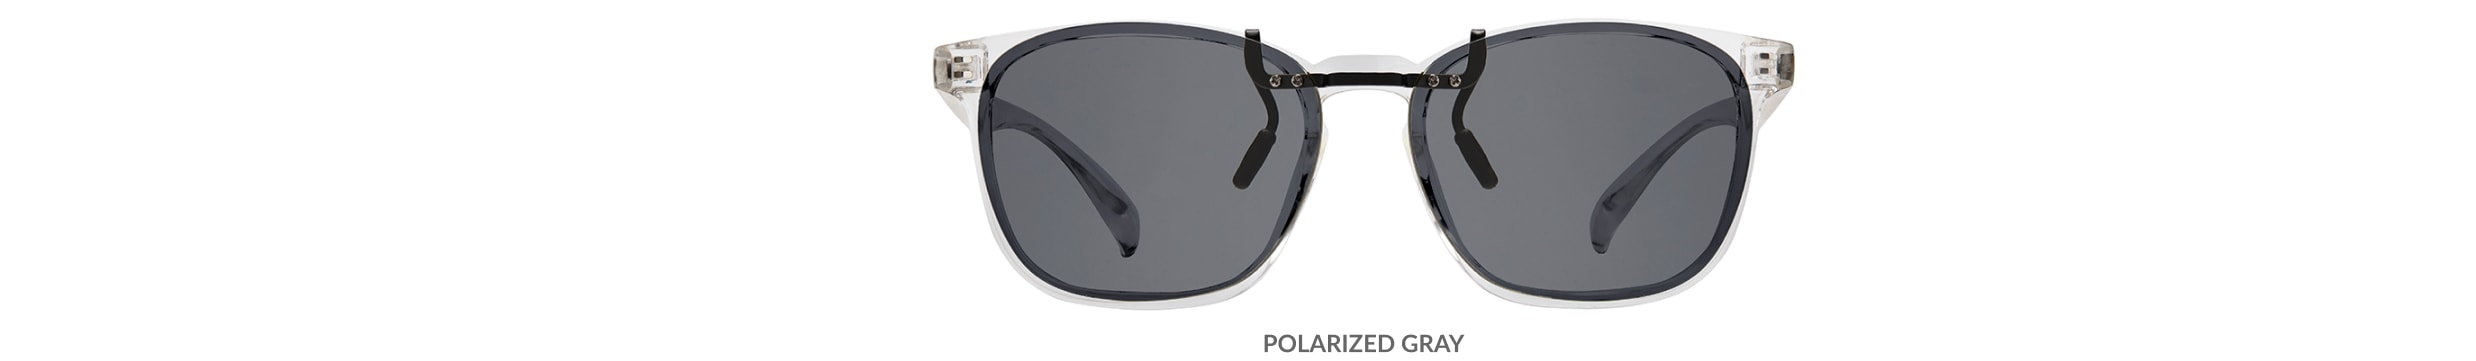 Custom clip-ons. Our polarized custom clip-ons reduce glare and are available for almost any frame. Each clip-on is specially cut to fit the frame with prices starting at just $3.95  (Compare to $50). Zenni square glasses #2020123 in clear, shown with gray polarized custom clip-on.